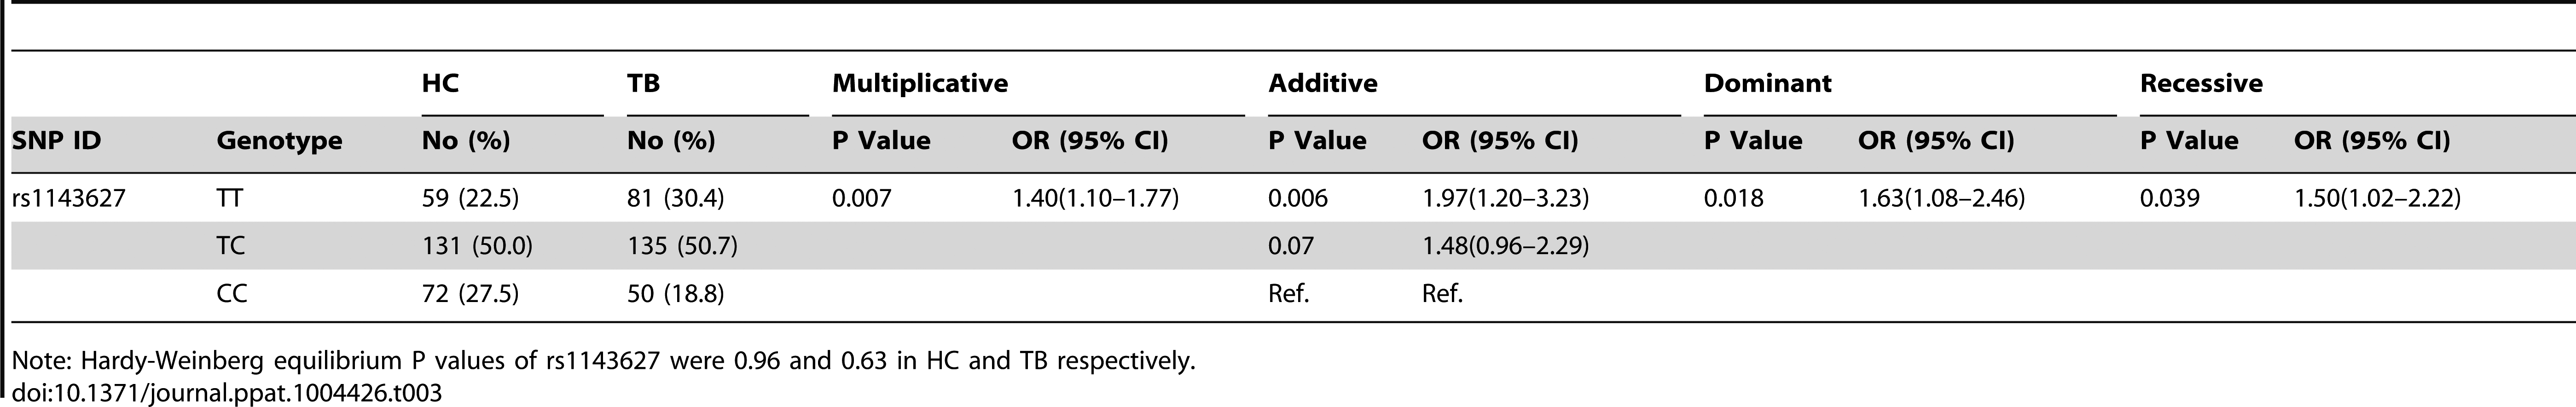 Replication of association between rs1143627 SNP and TB susceptibility in Shanghai cohort.